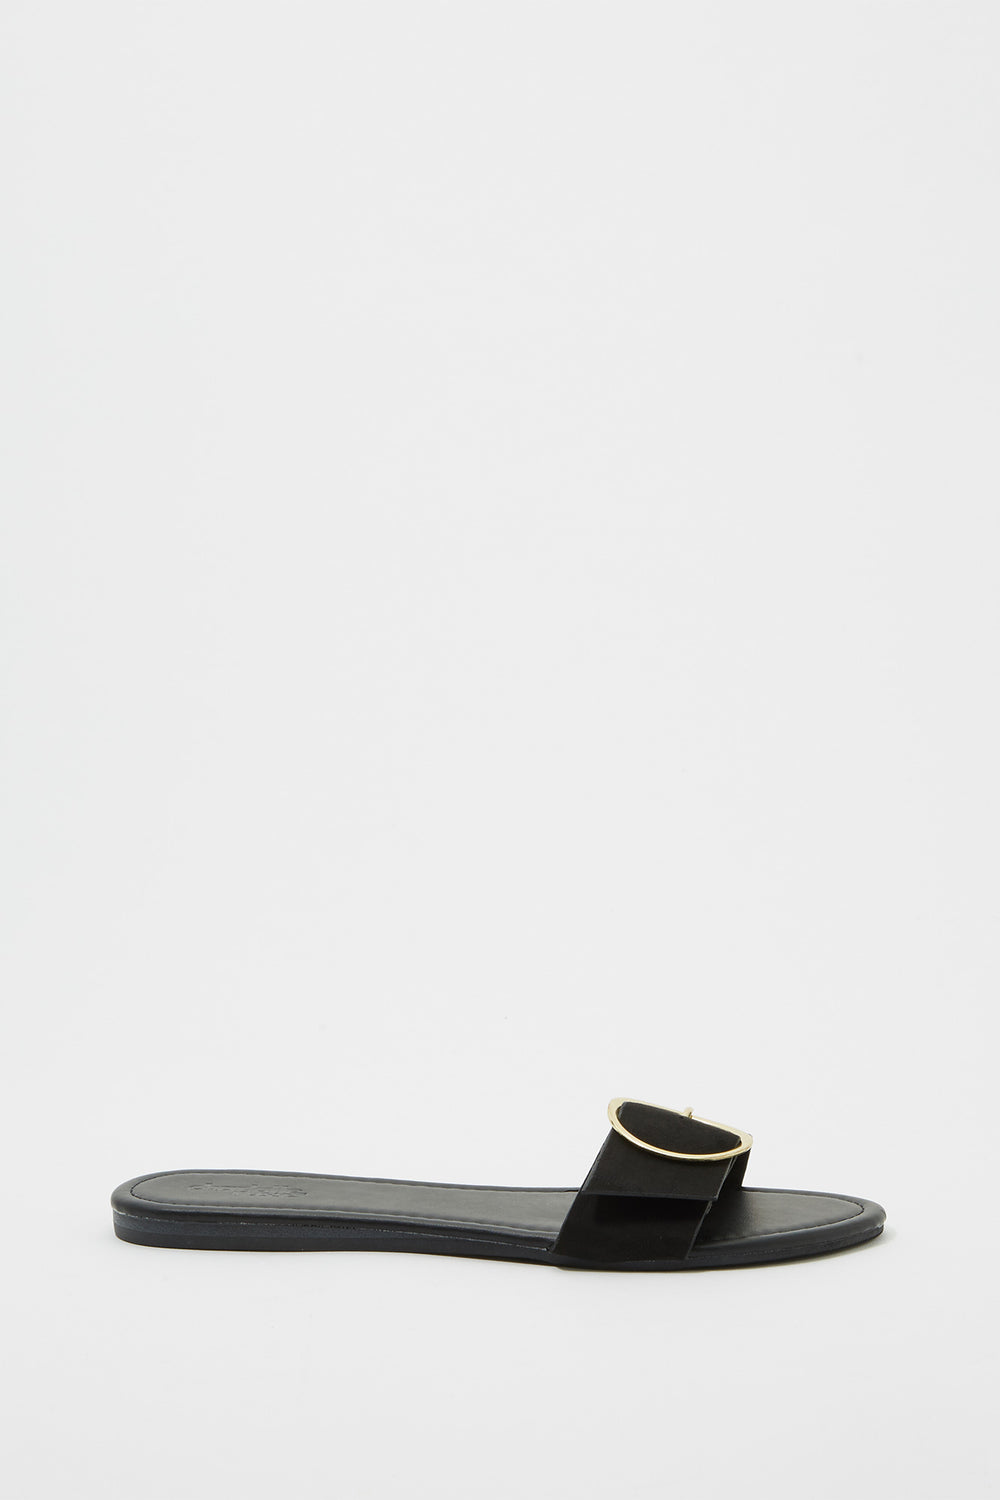 Buckle Slide Sandal Black